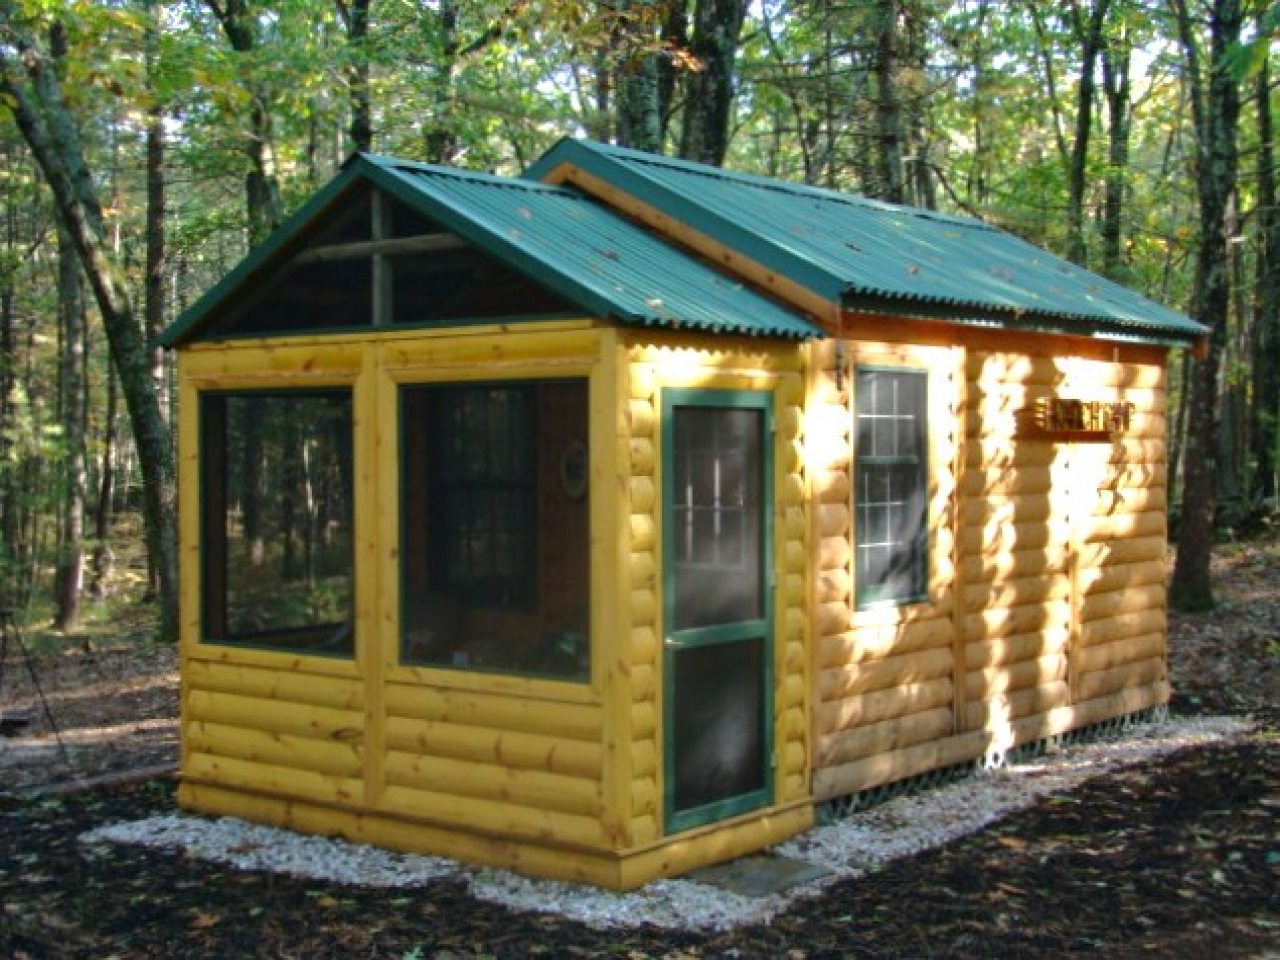 Small camping cabin kits tiny cabin kits camp cabin kits for 1 bedroom log cabin kits